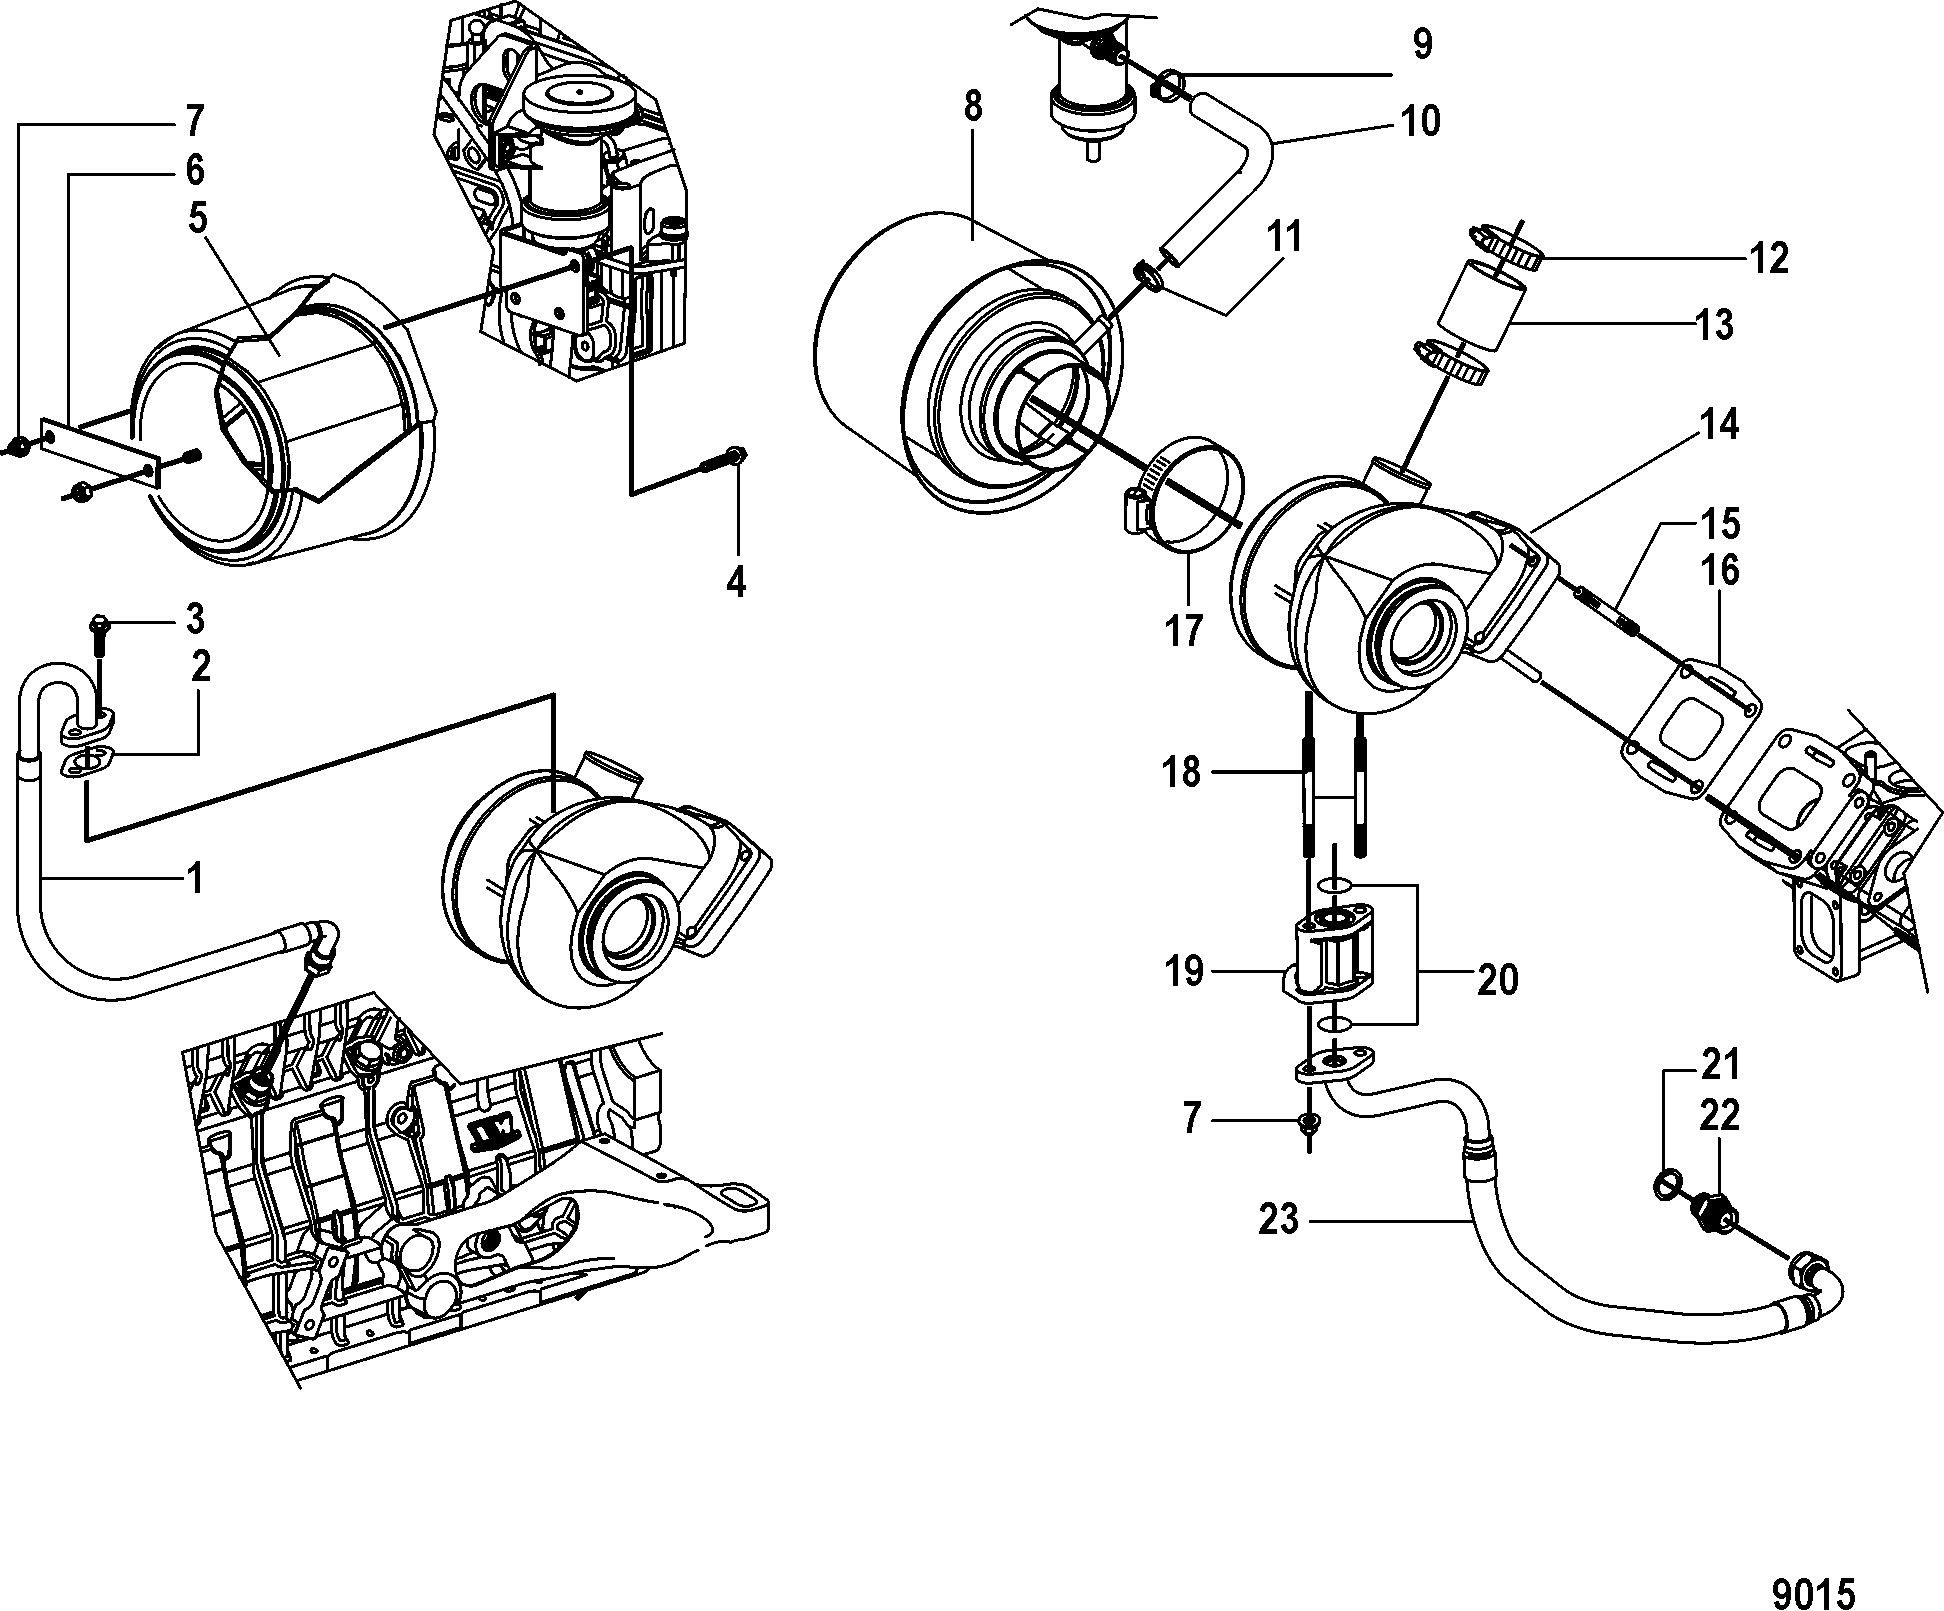 2012 Nissan Sentra Fuse Diagram together with 4opa8 Starter Buick Century likewise Farm Machinery in addition respond furthermore 94 Dodge Dakota Egr Valve Location. on alternator filter